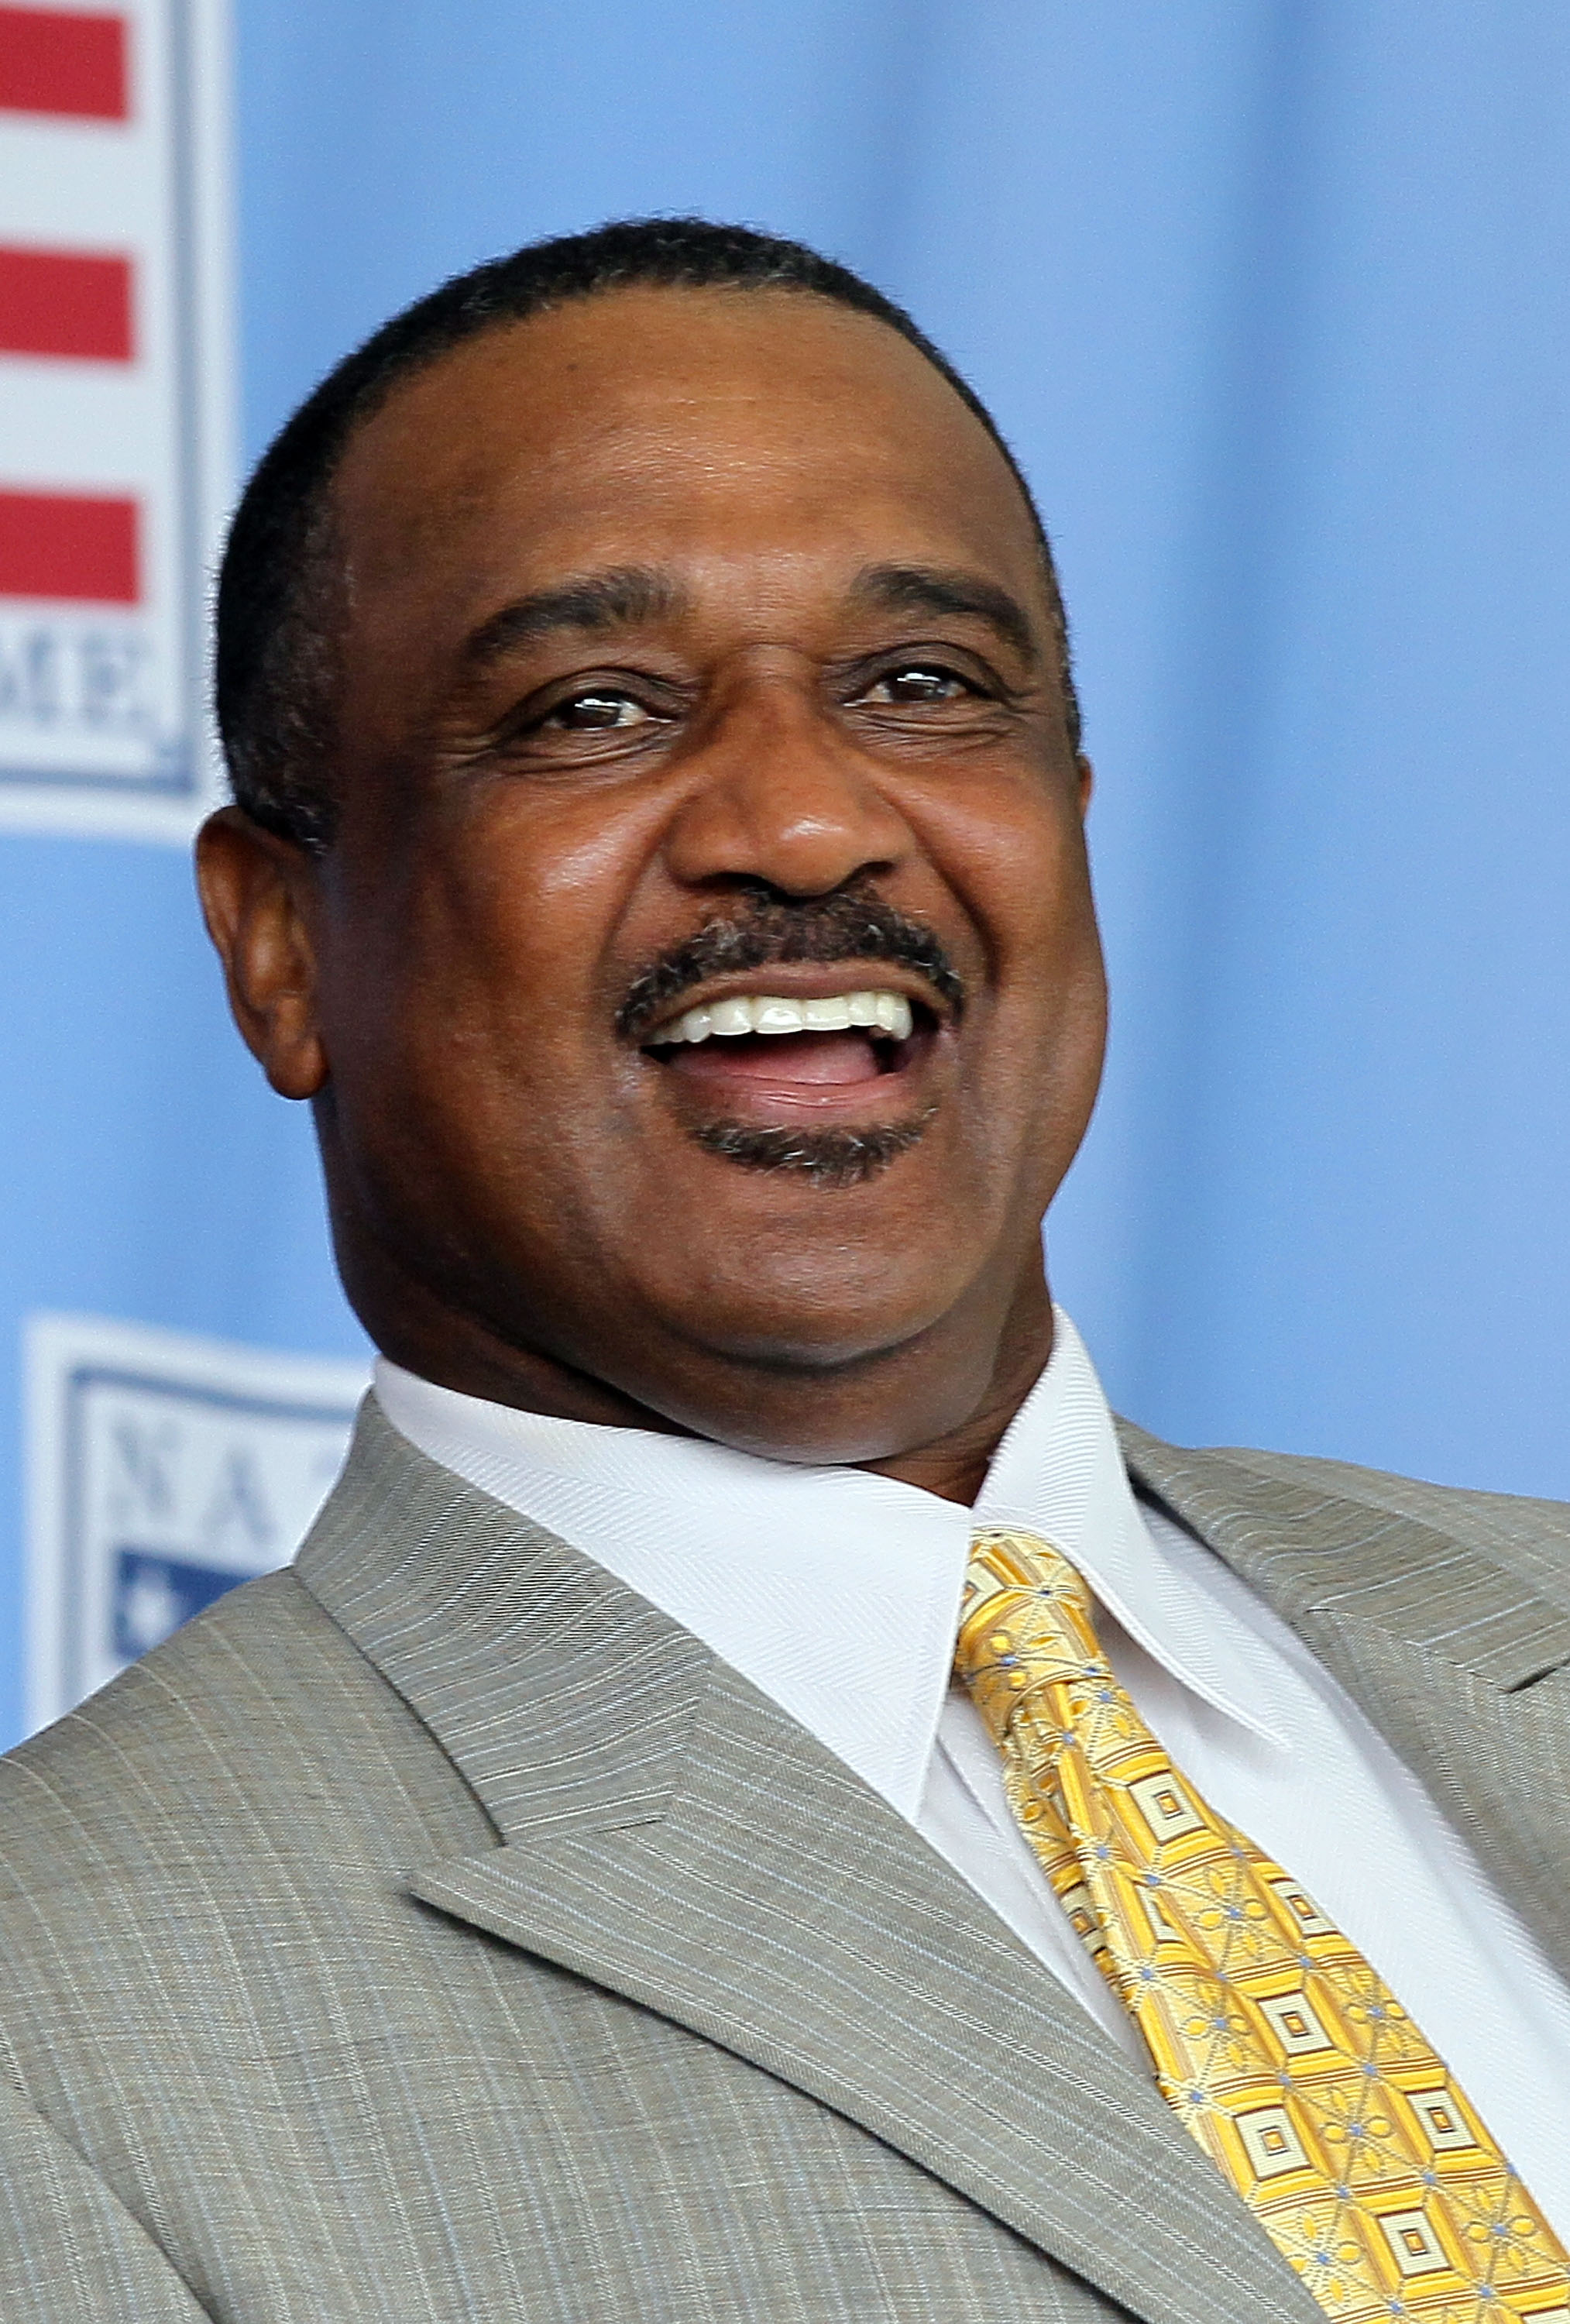 COOPERSTOWN, NY - JULY 25:  Hall of Famer Jim Rice attends the Baseball Hall of Fame induction ceremony at Clark Sports Center on July 25, 20010 in Cooperstown, New York.  (Photo by Jim McIsaac/Getty Images)